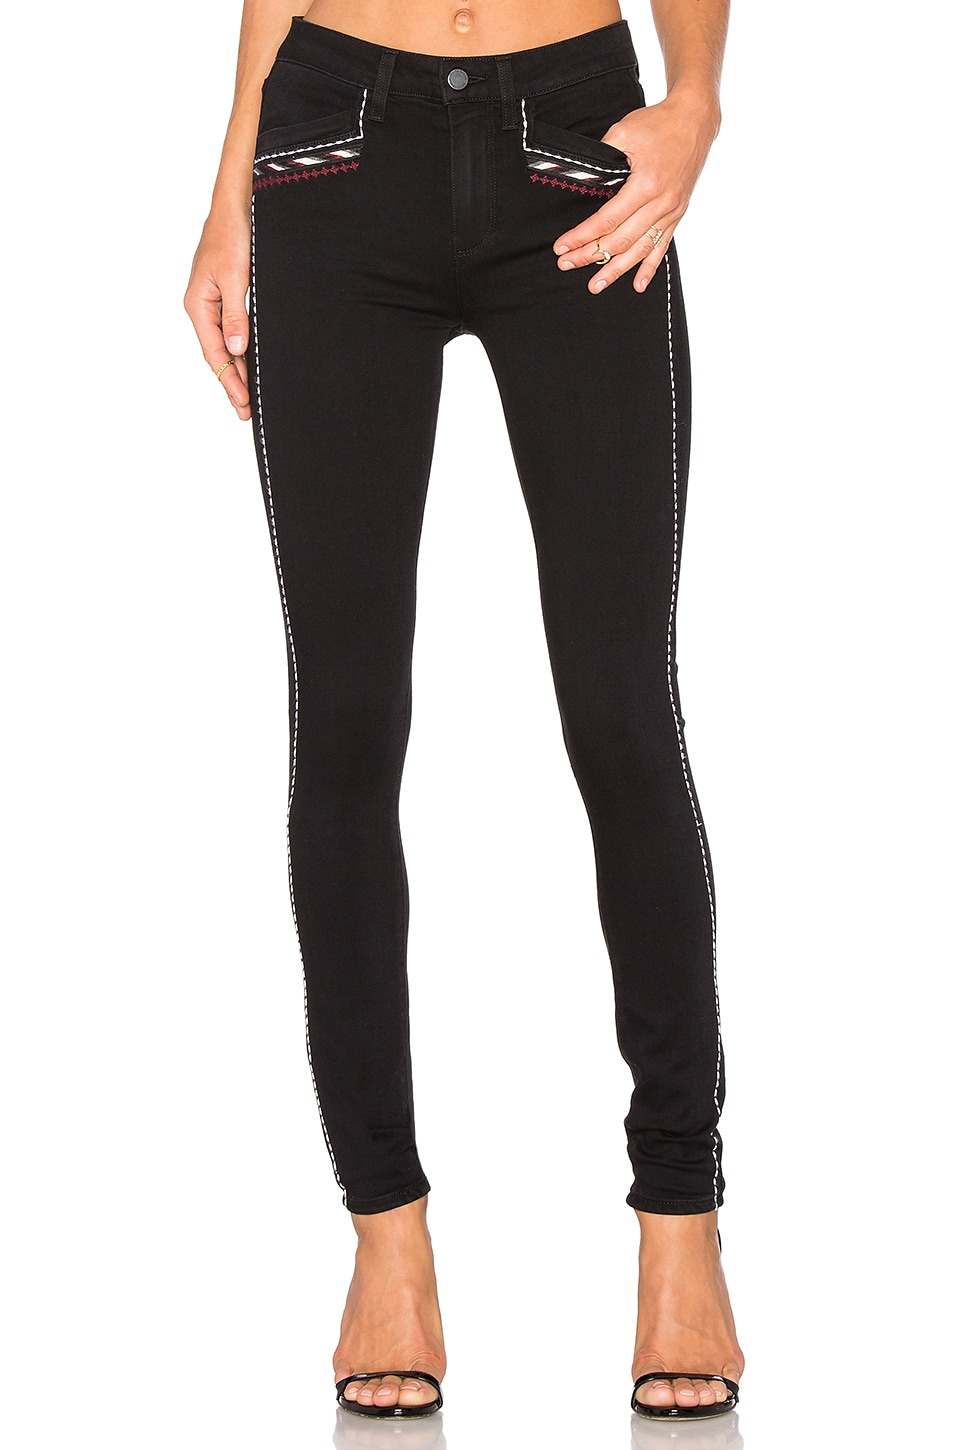 PAIGE Amberly Ultra Skinny in Noir Boleyn Embroidered